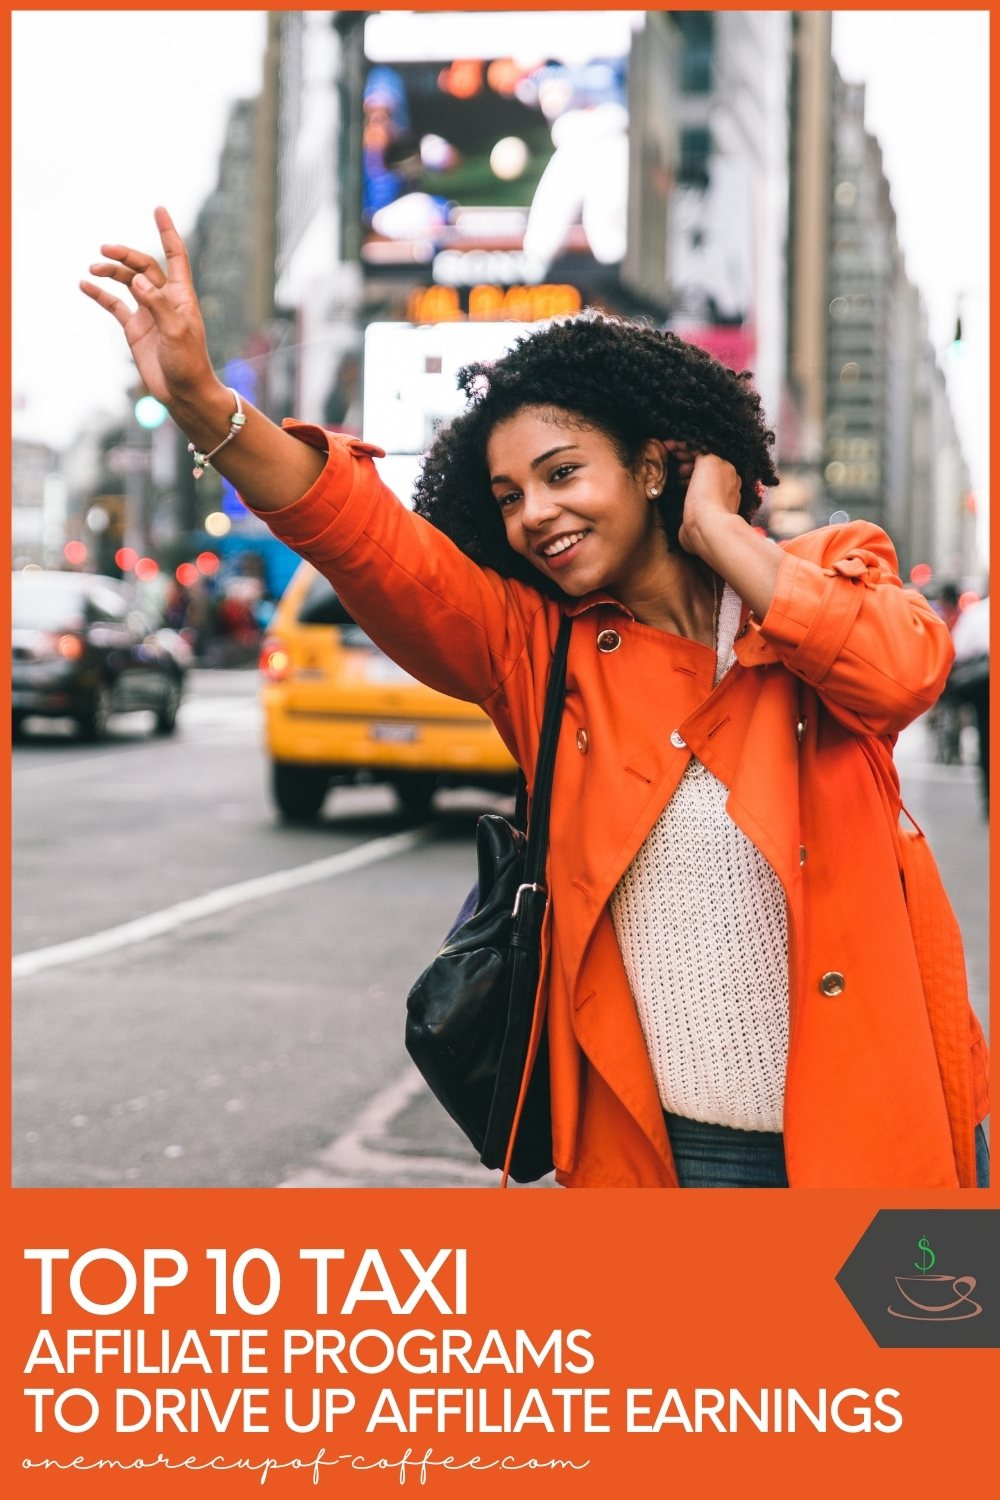 smiling woman in orange jacket hailing a taxi, with text at the bottom with orange background